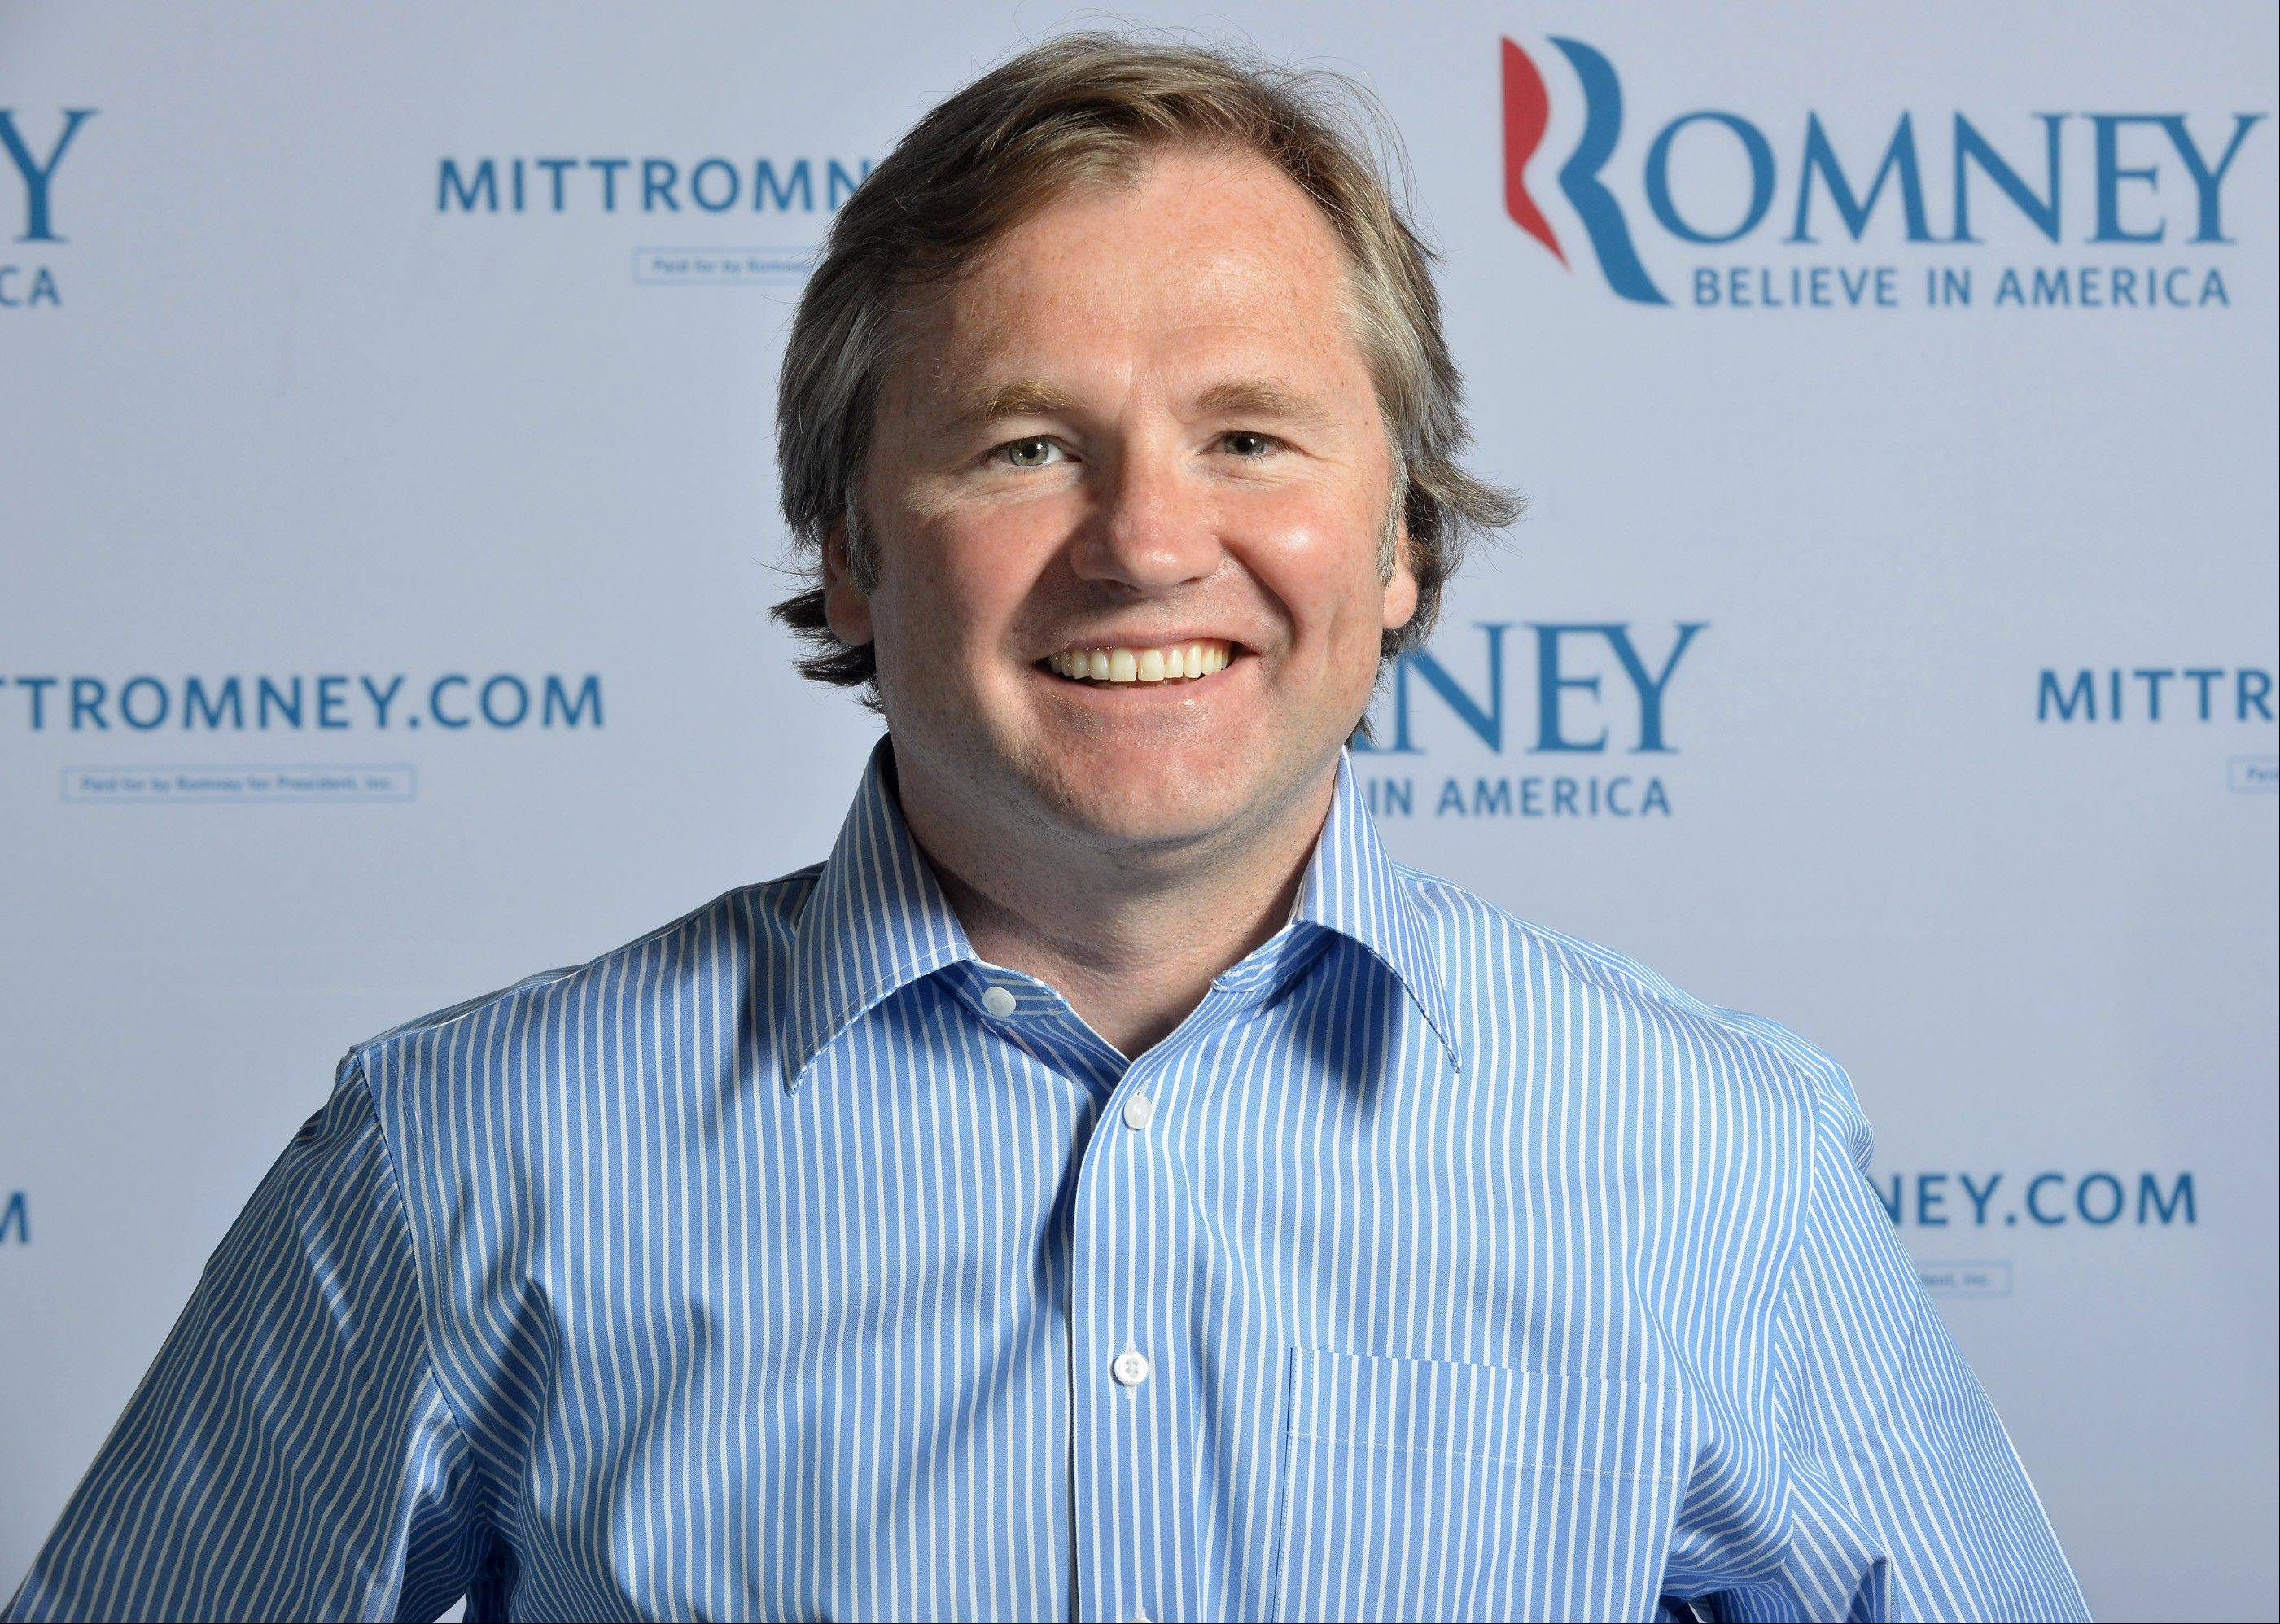 This June 1, 2012, file photo shows Romney Campaign senior adviser Eric Fehrnstrom at Republican presidential candidate's, Mitt Romney's, campaign headquarters in Boston, Mass. A former newspaper reporter, Fehrnstrom has served as Romney's spokesman since he was governor. He frequently travels with Romney and is considered an authority on Romney's record in Massachusetts.